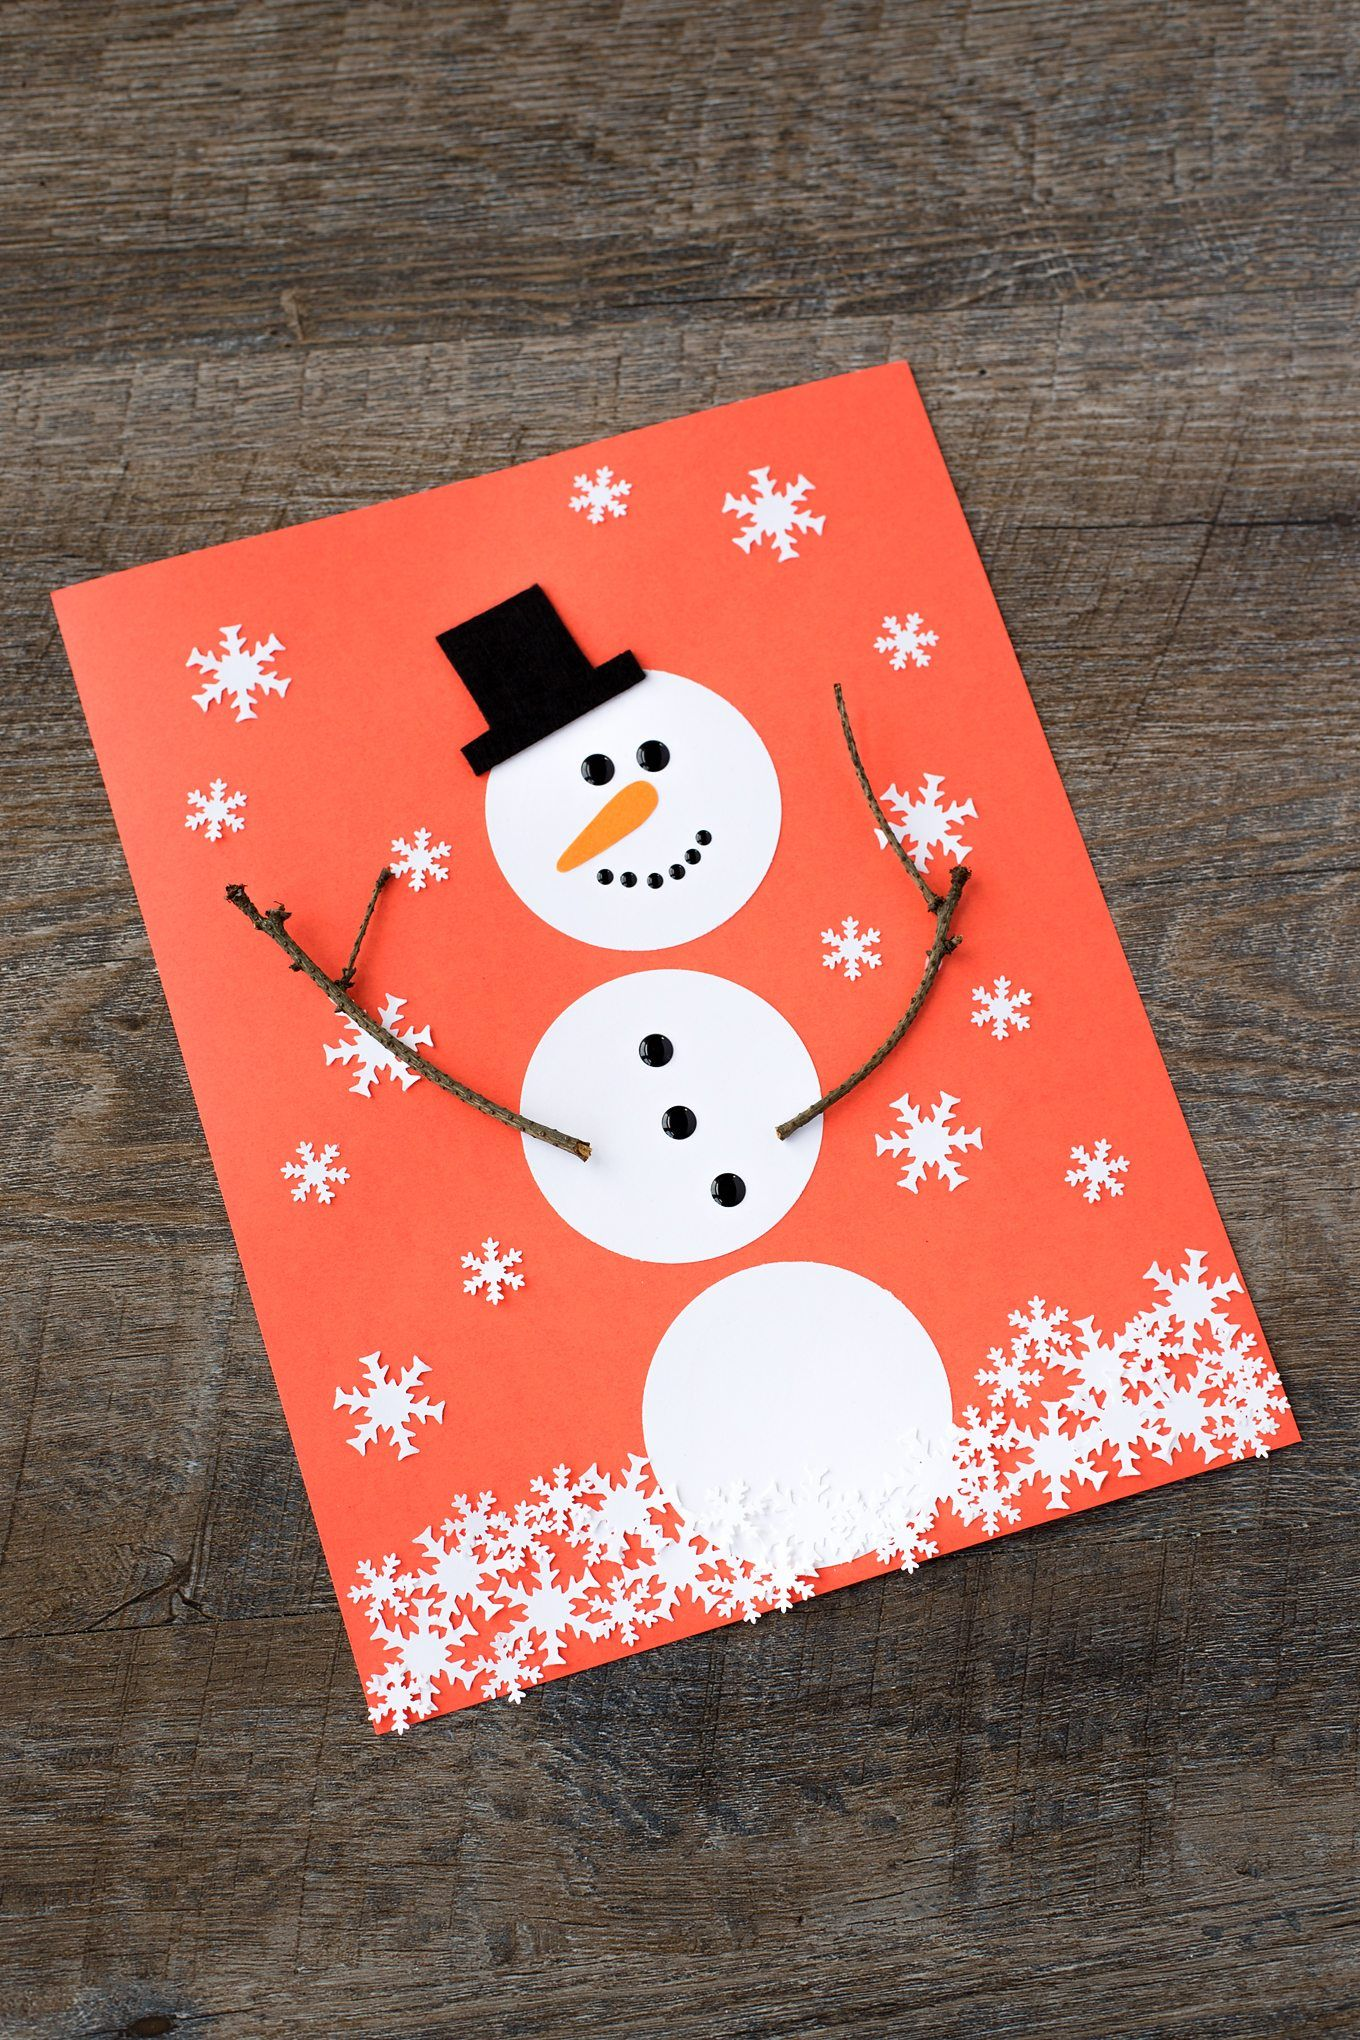 The Happiest Paper Snowman Craft for Kids Construction